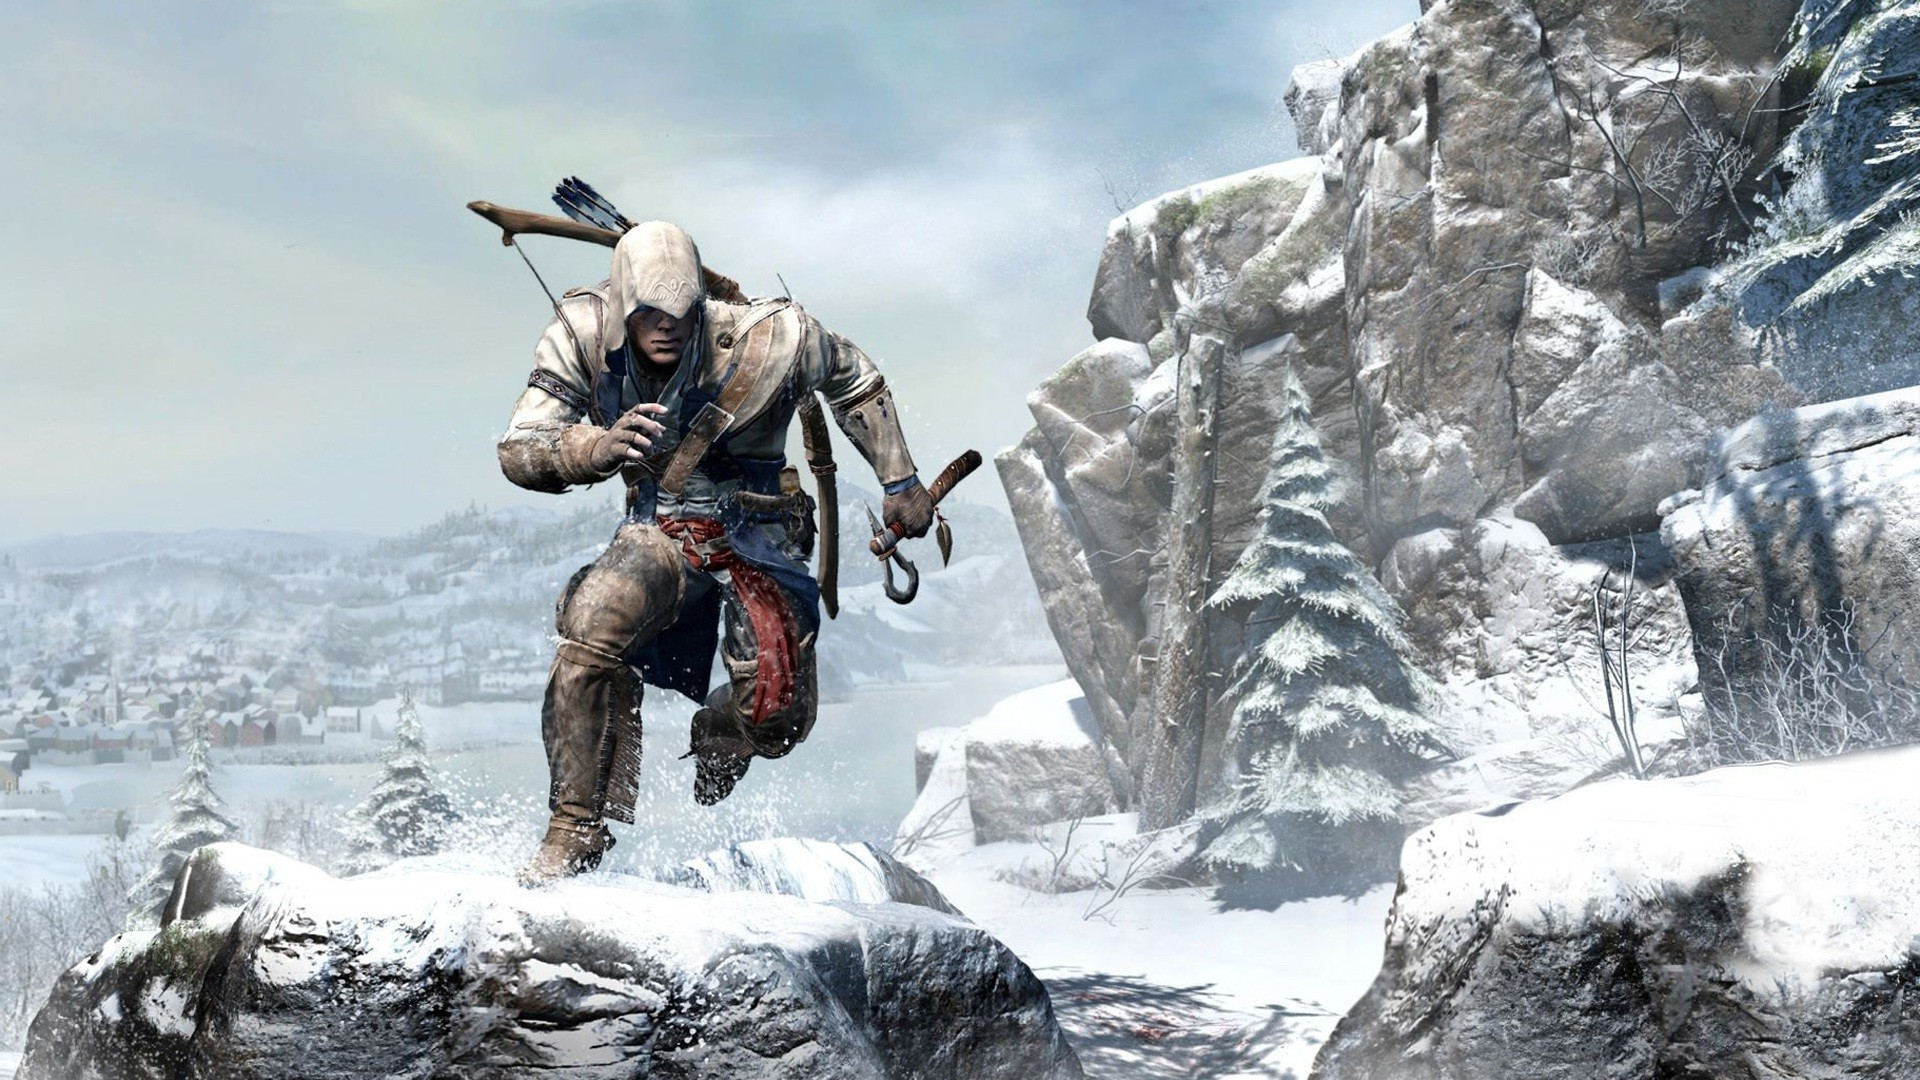 Assassins Creed III, Connor Kenway, American Revolution, Video Games  Wallpapers HD / Desktop and Mobile Backgrounds